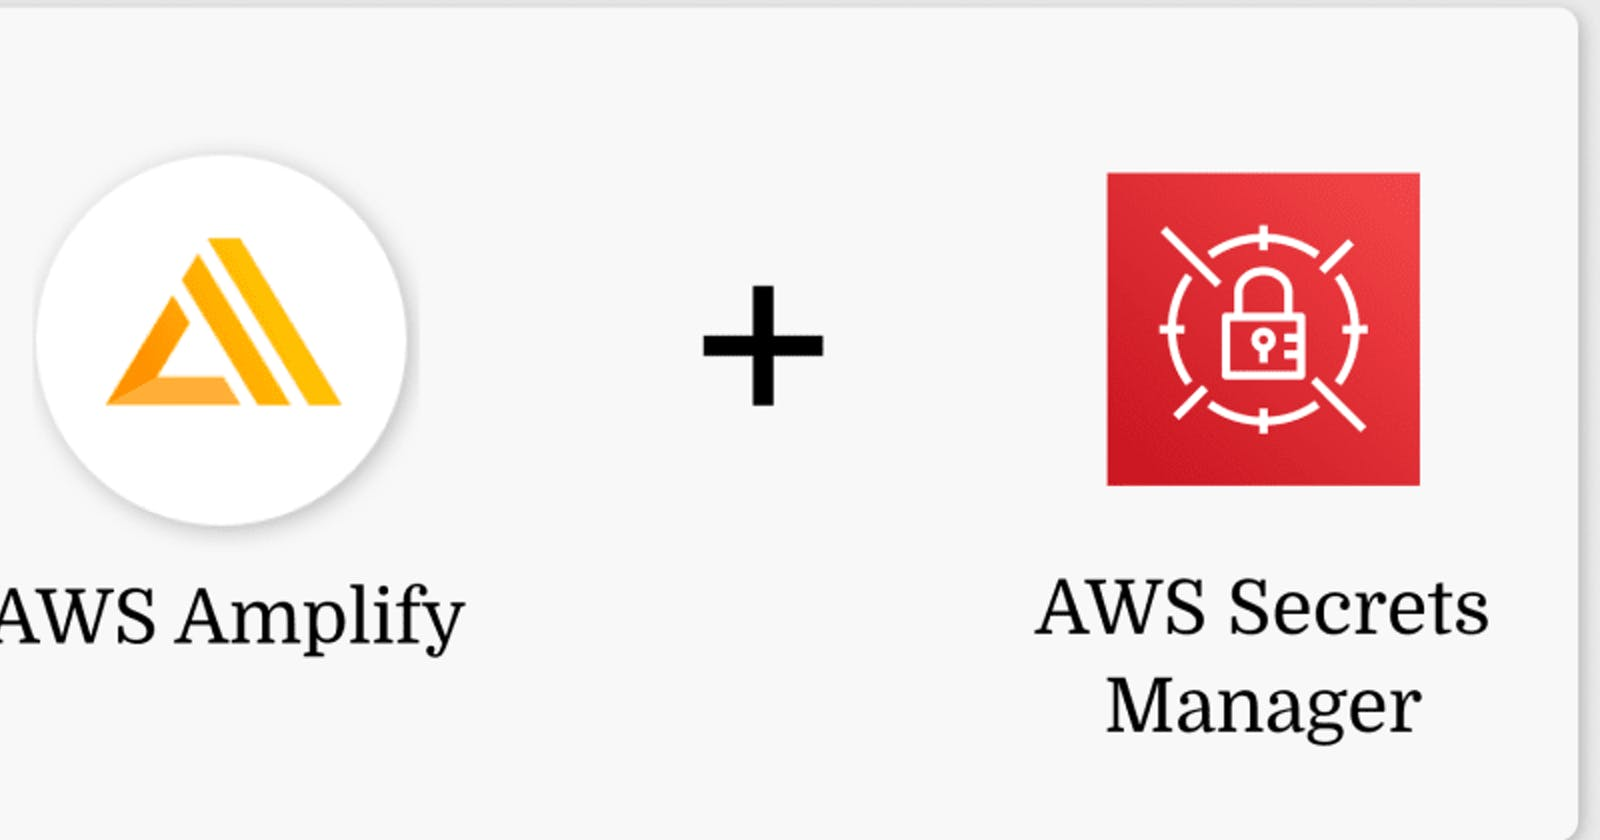 How to Use Environment Variables to Store Secrets in AWS Amplify Backend